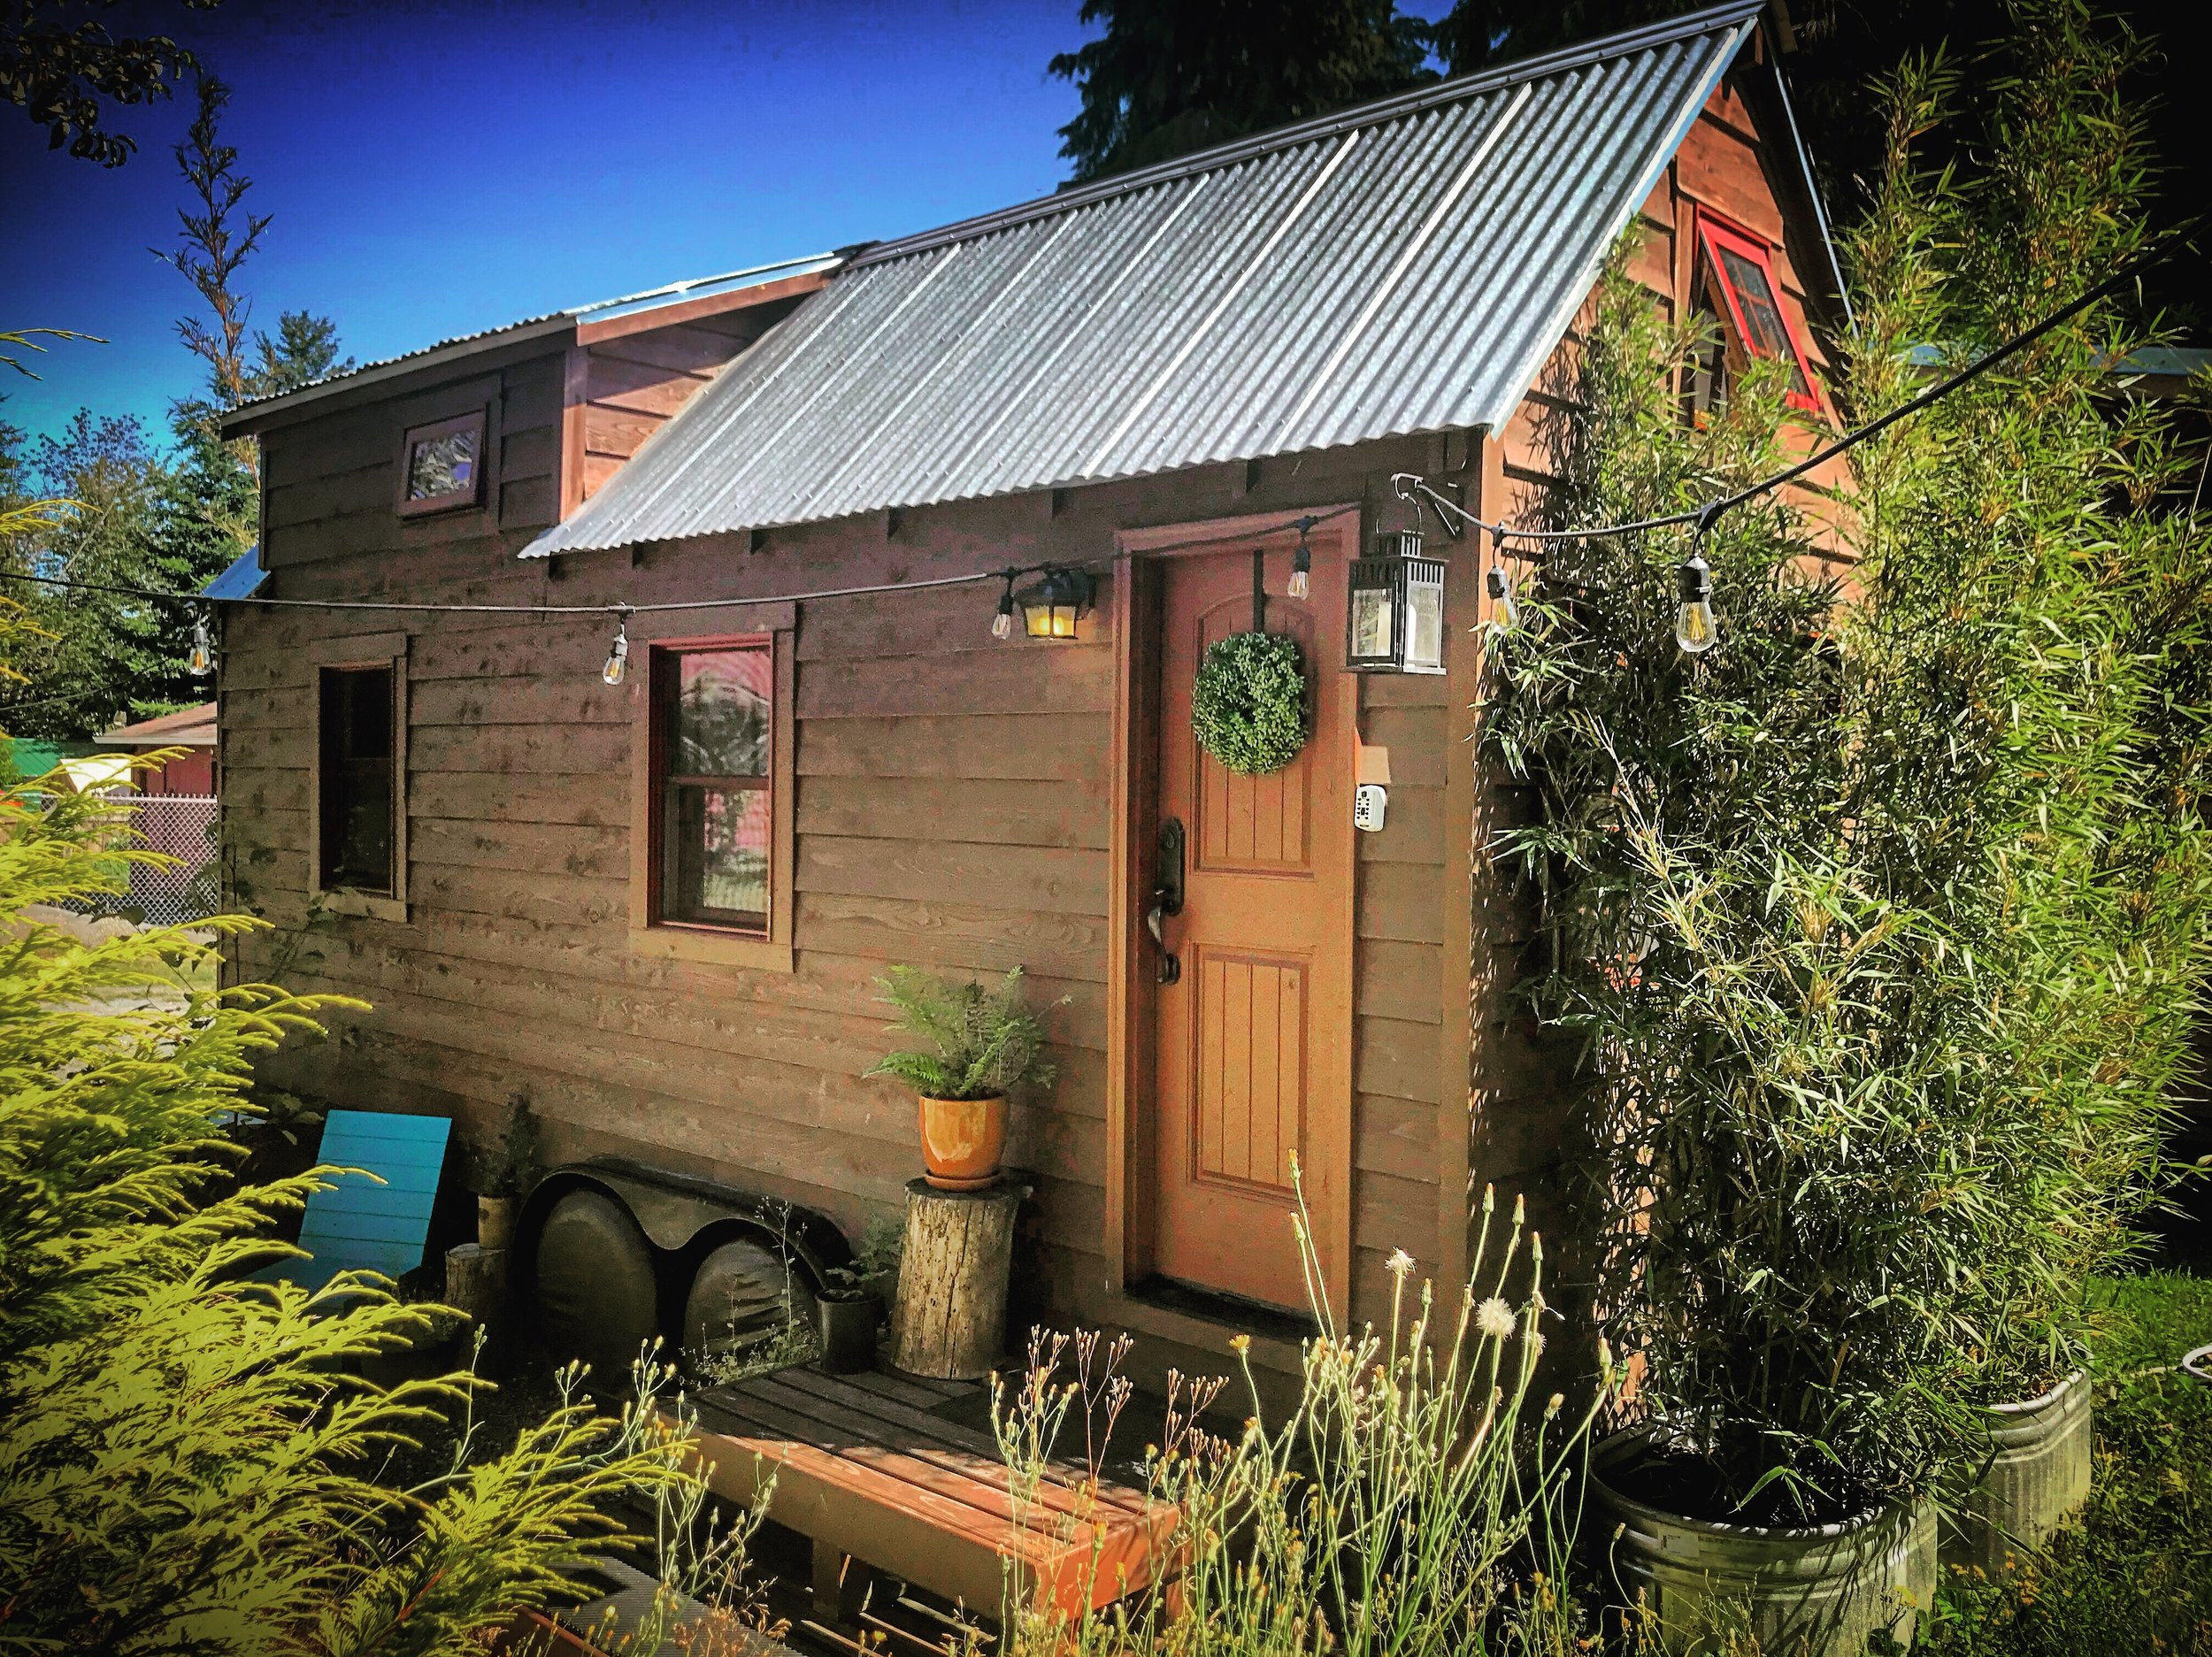 Your Vacation Starts Here - Come stay in the Tiny Tack House.Located in the greater Seattle area, The Tiny Tack House offers a chance to try Tiny before taking the plunge yourself. Book your stay now at Airbnb.com